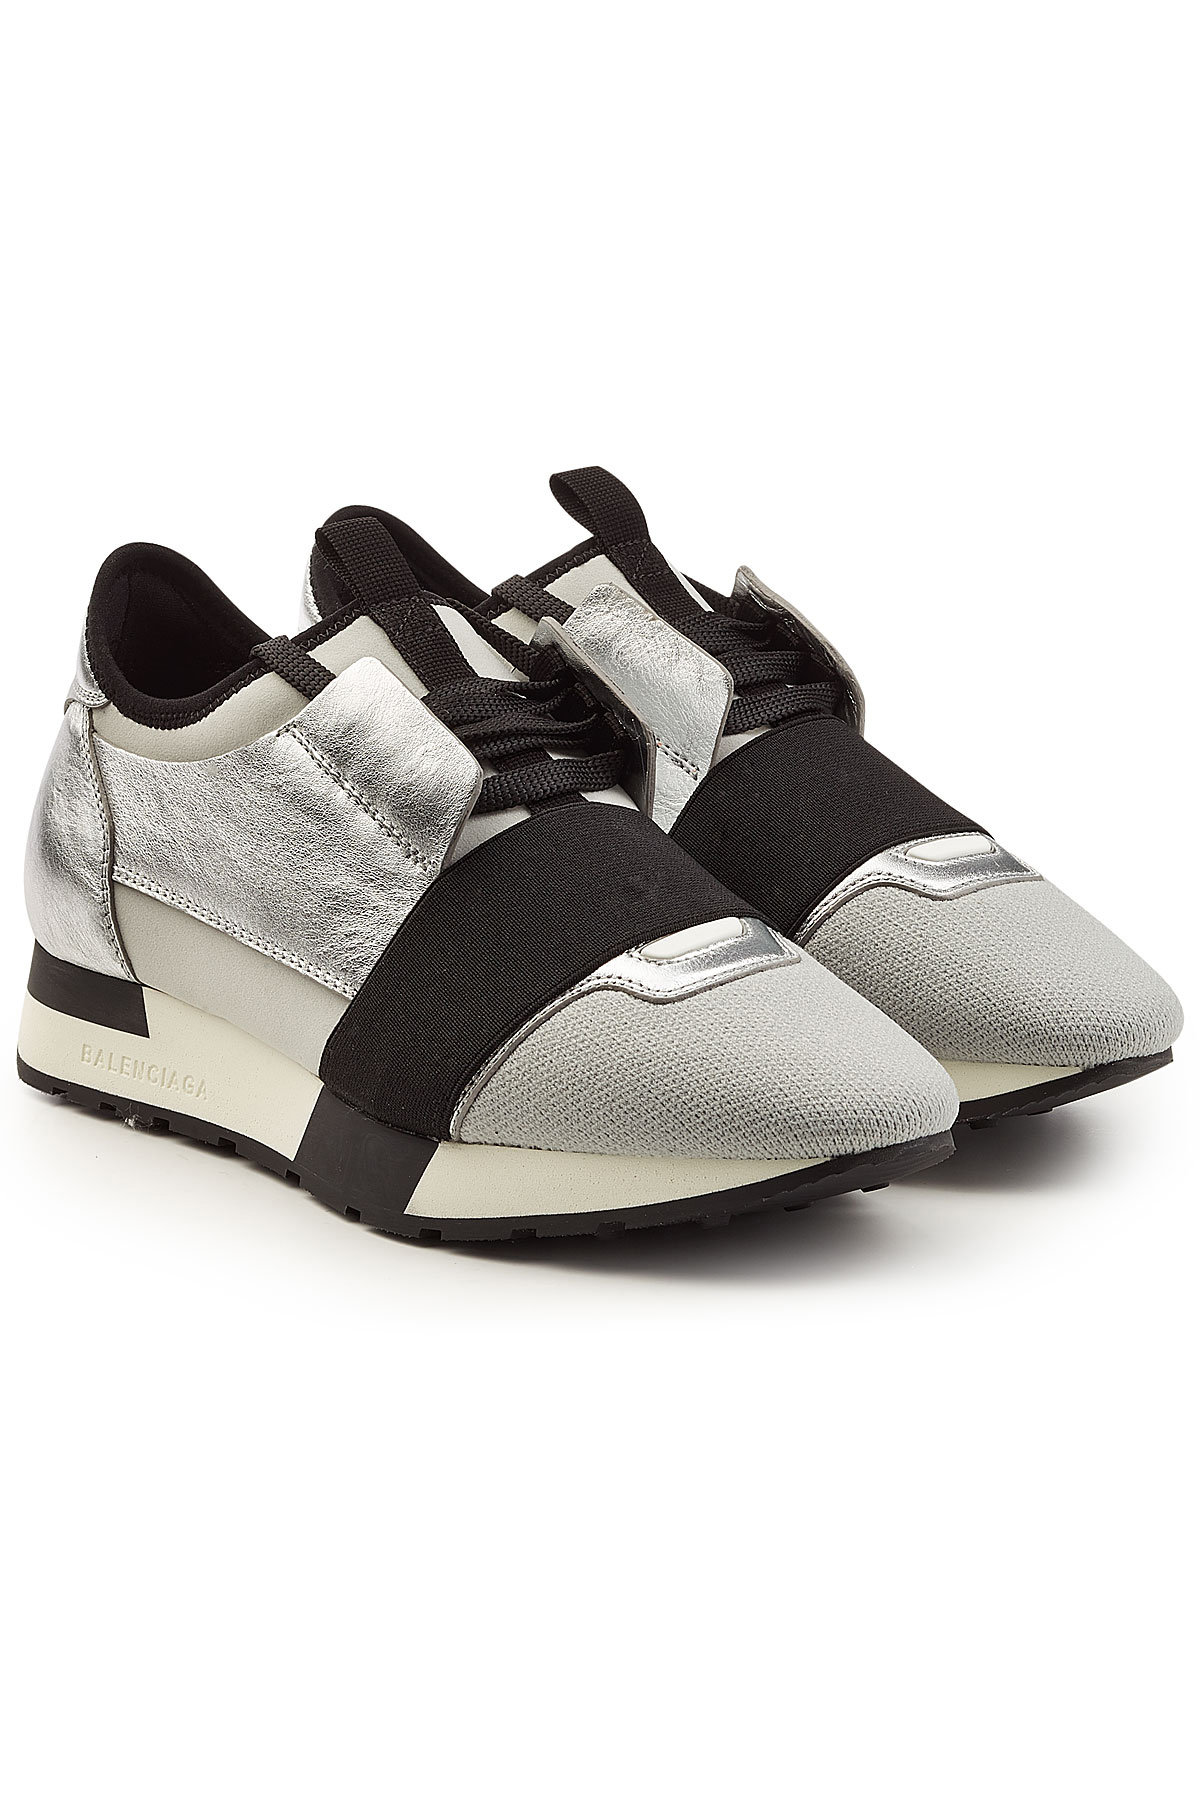 Balenciaga Race Runner Sneakers with Metallic Leather, Mesh and Suede Gr. IT 38